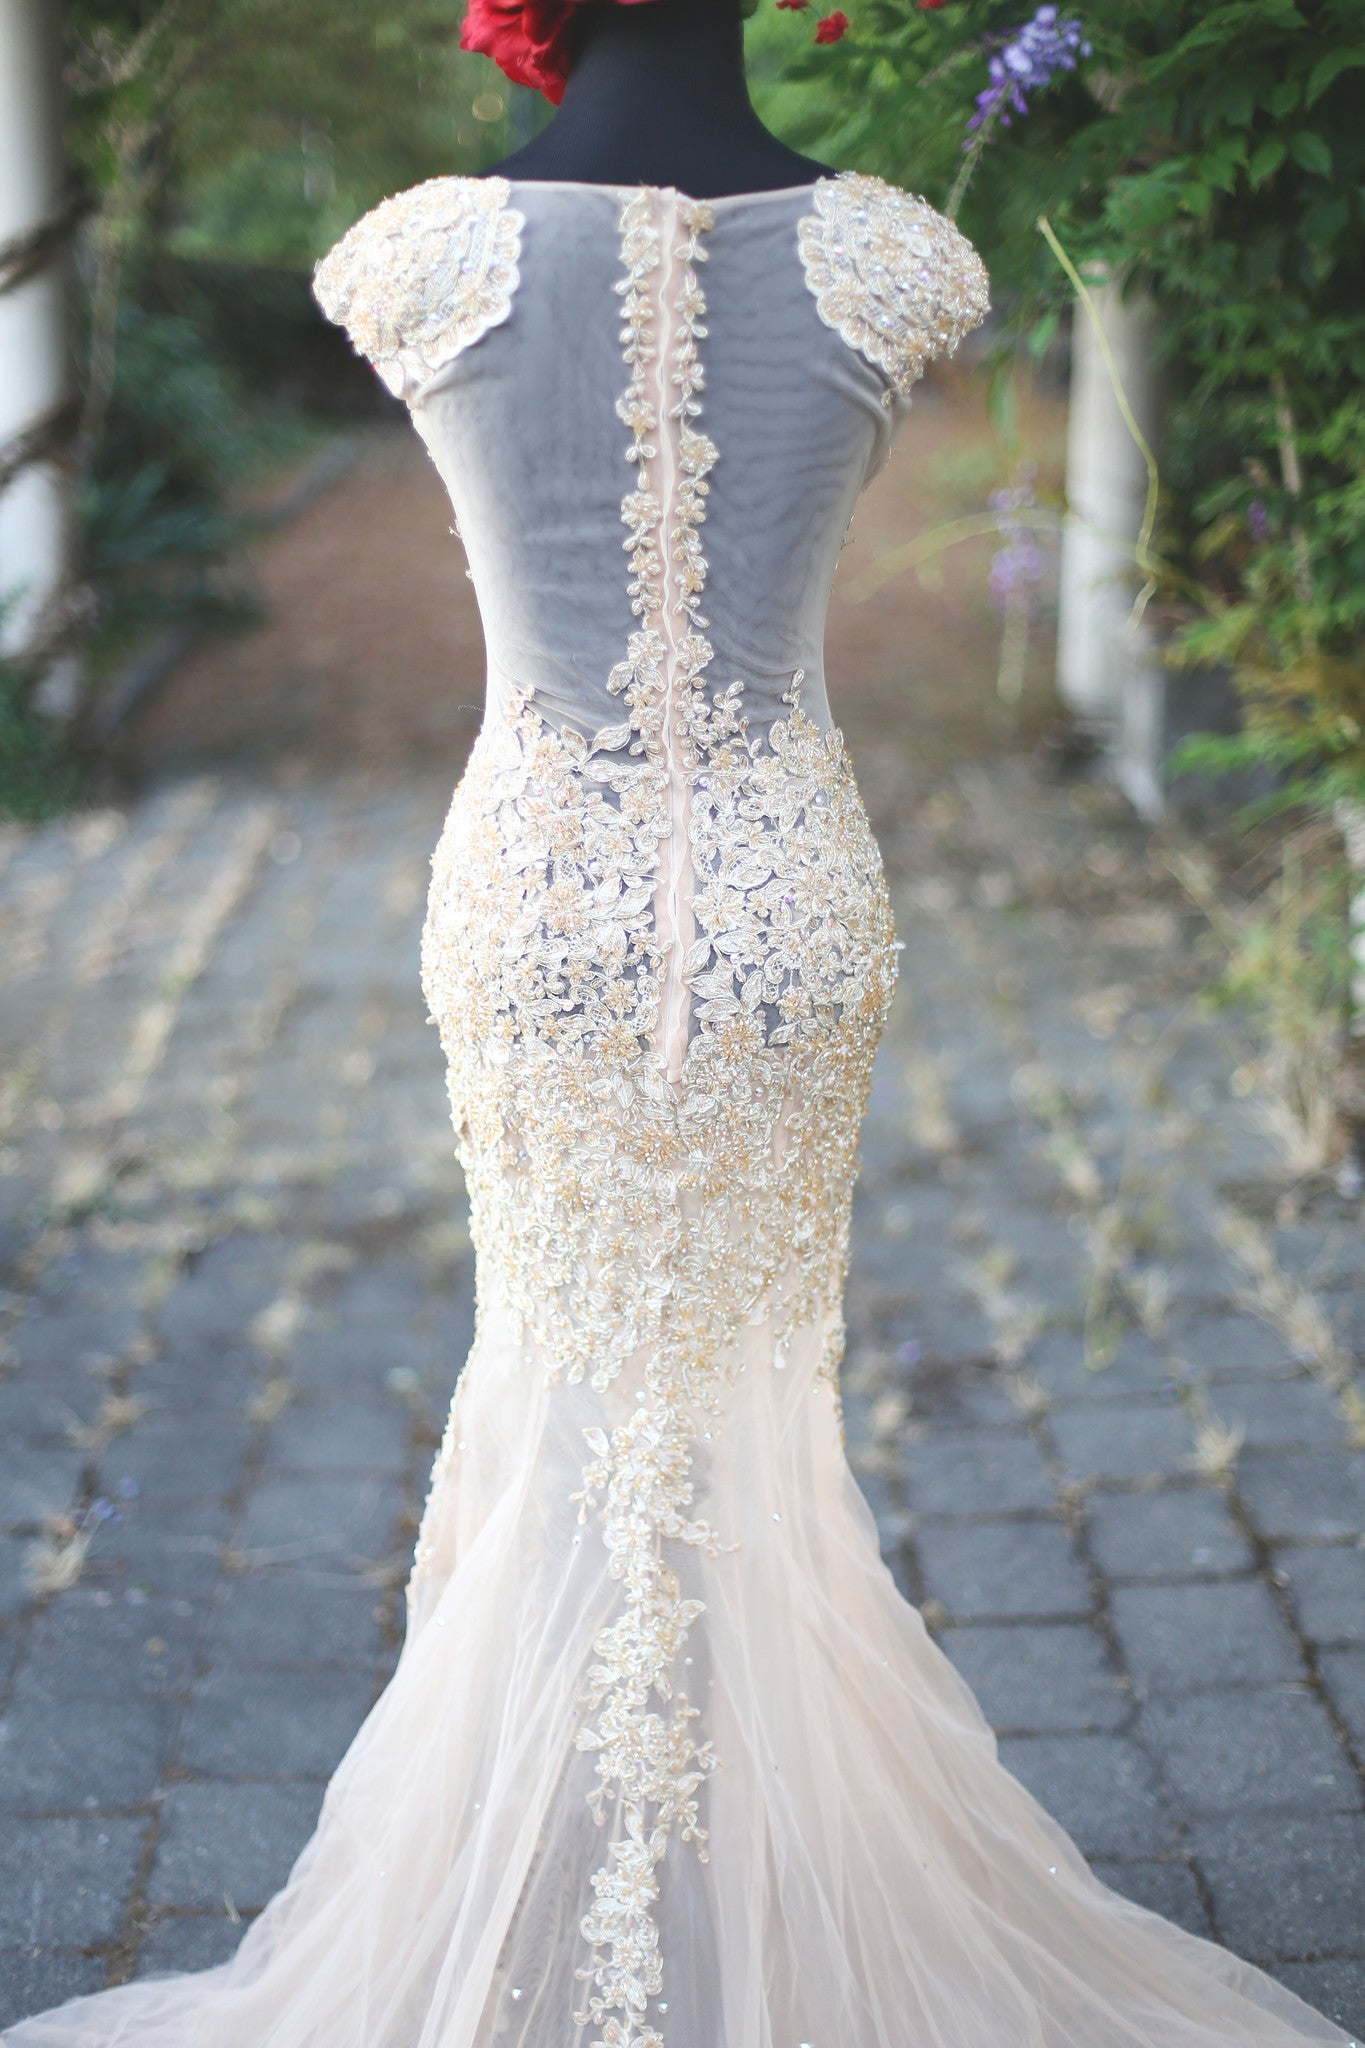 Beaded Lace Gold Dress With Swarovski Crystals (#Jacqueline) - Dream Dresses by P.M.N  - 7